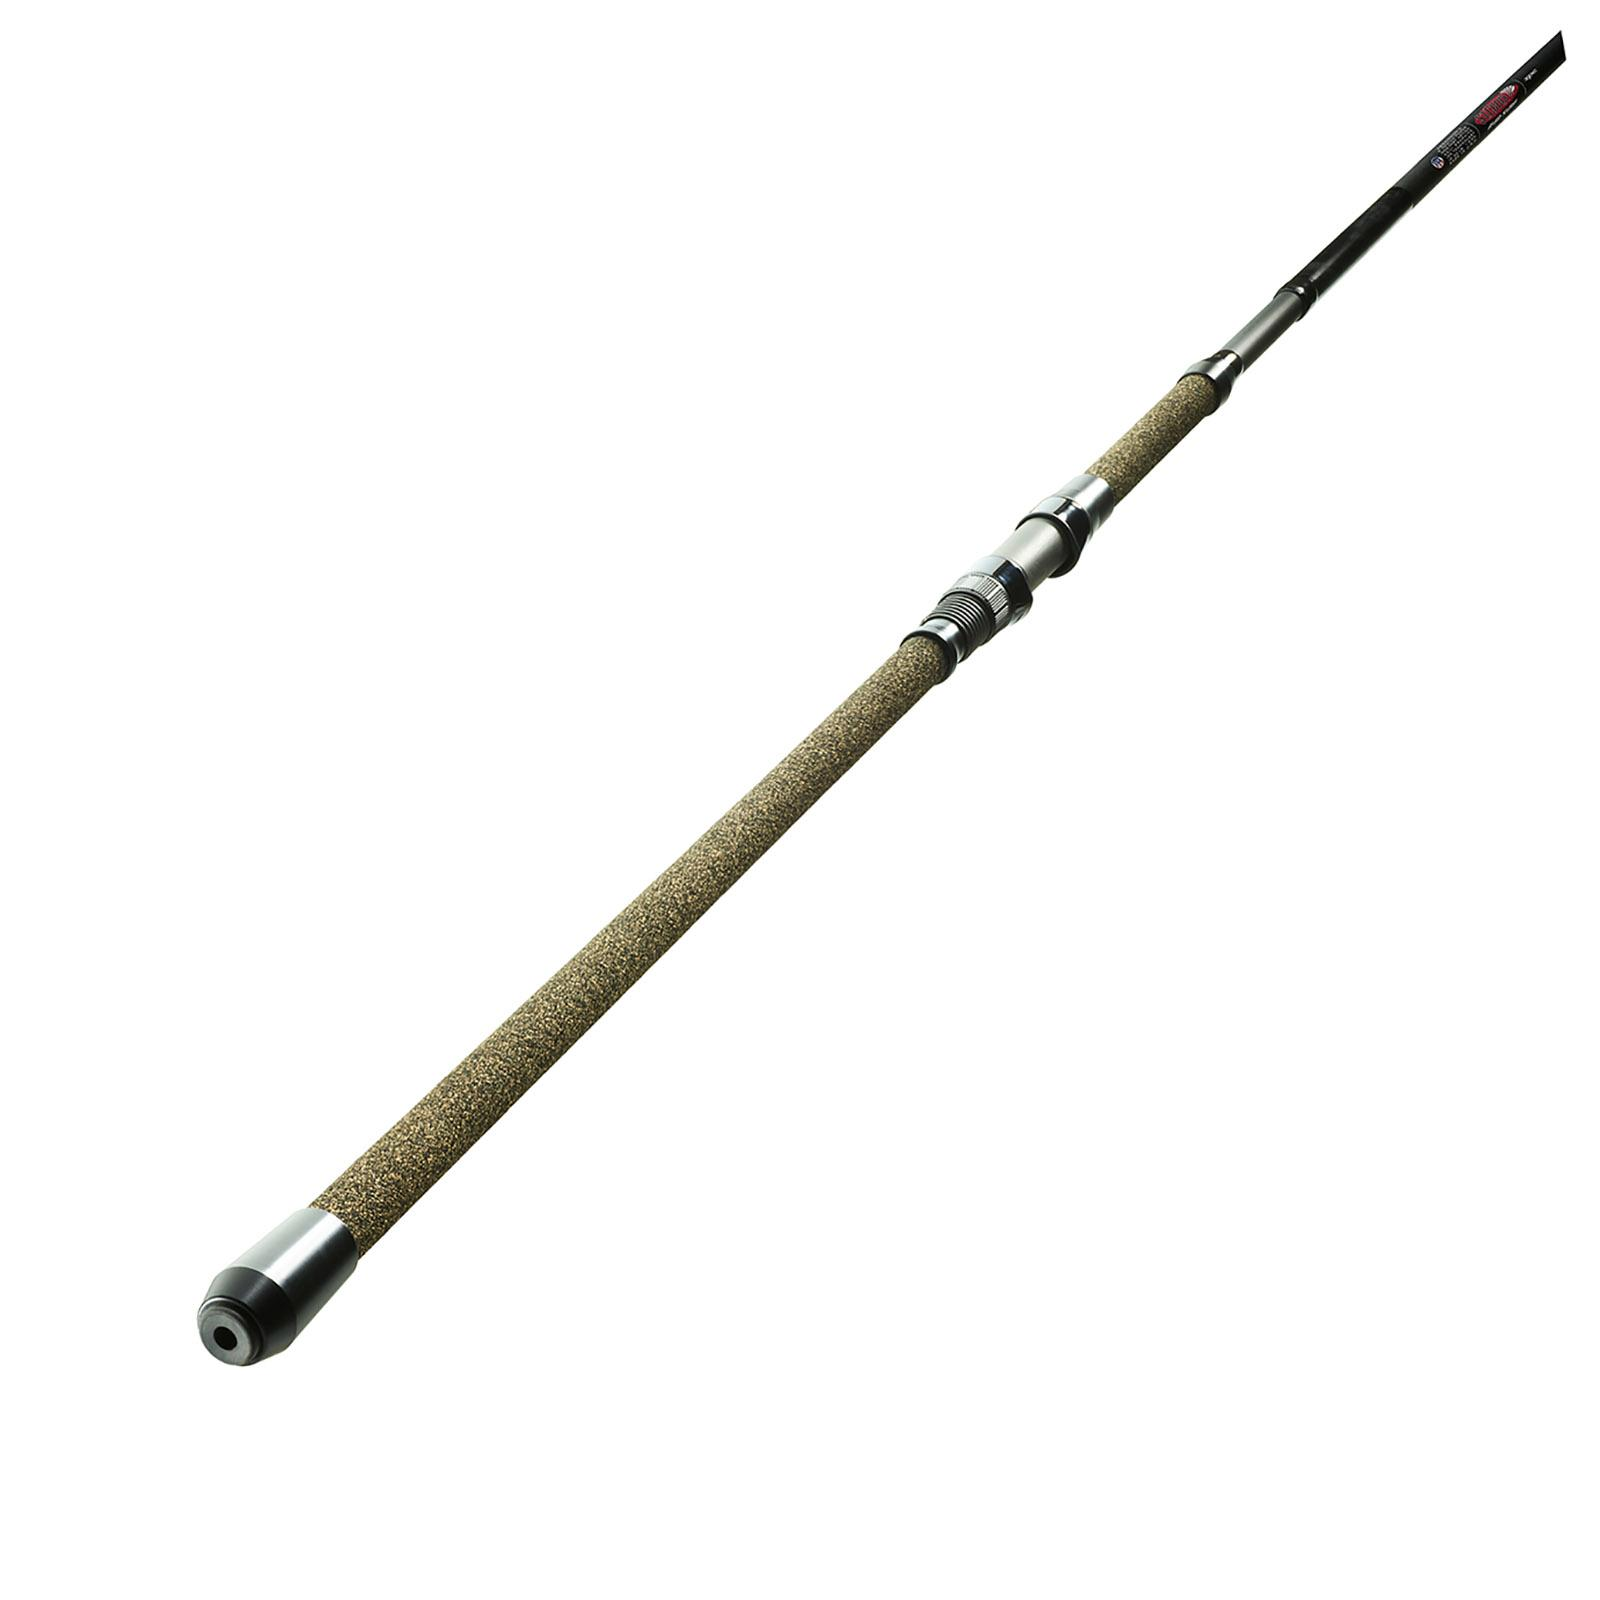 St. Croix Avid Surf Spinning Rod